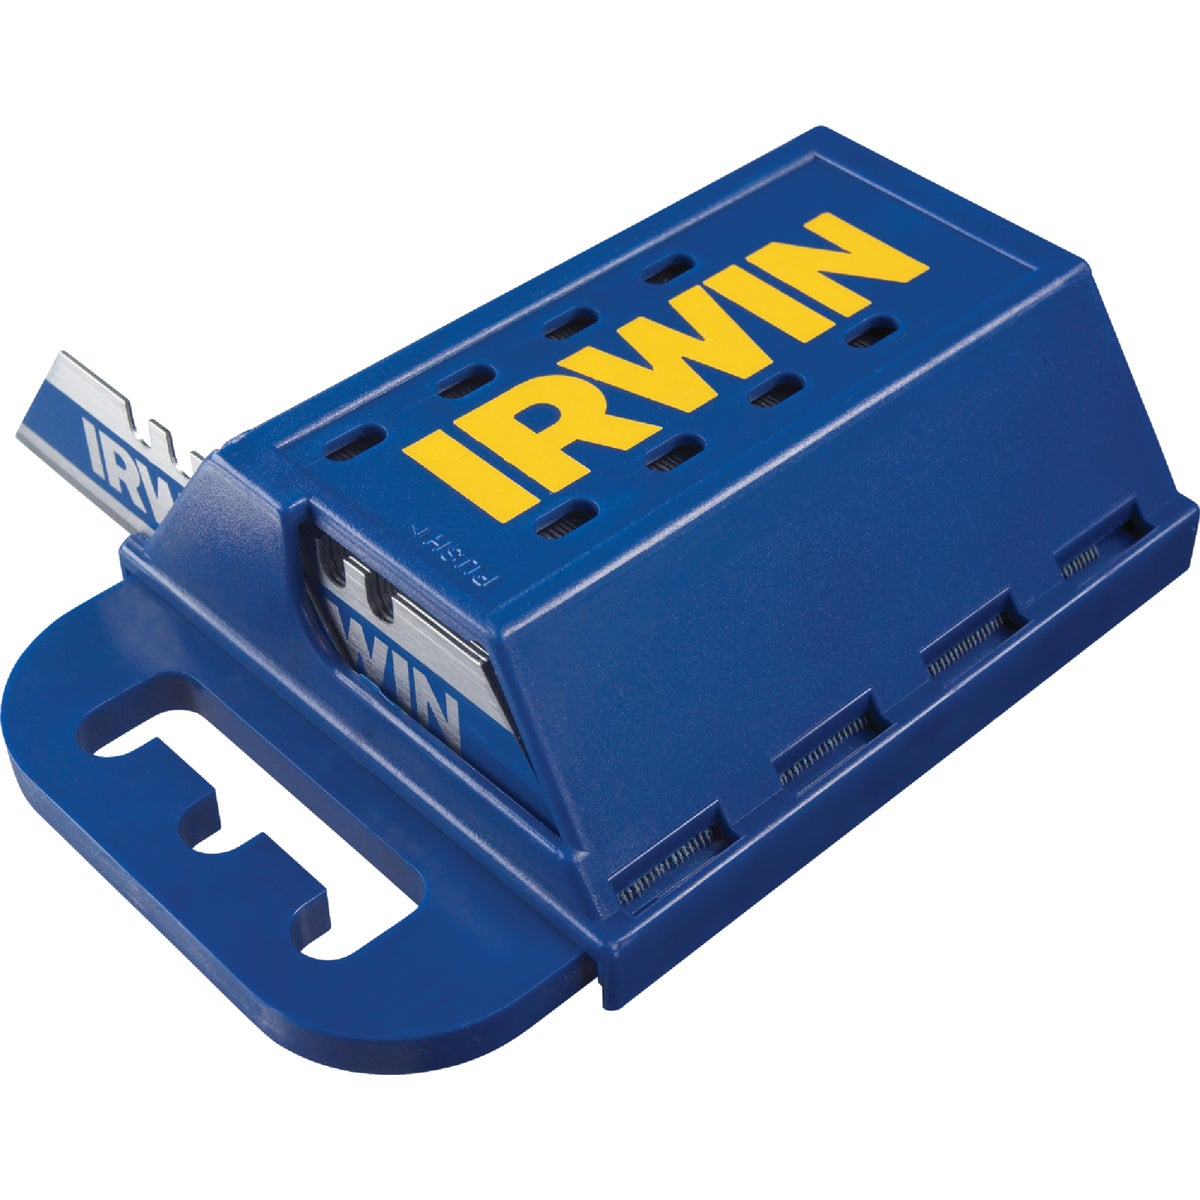 100 PACK BI-METAL BLADE - 2084400 by Irwin Industr Tool